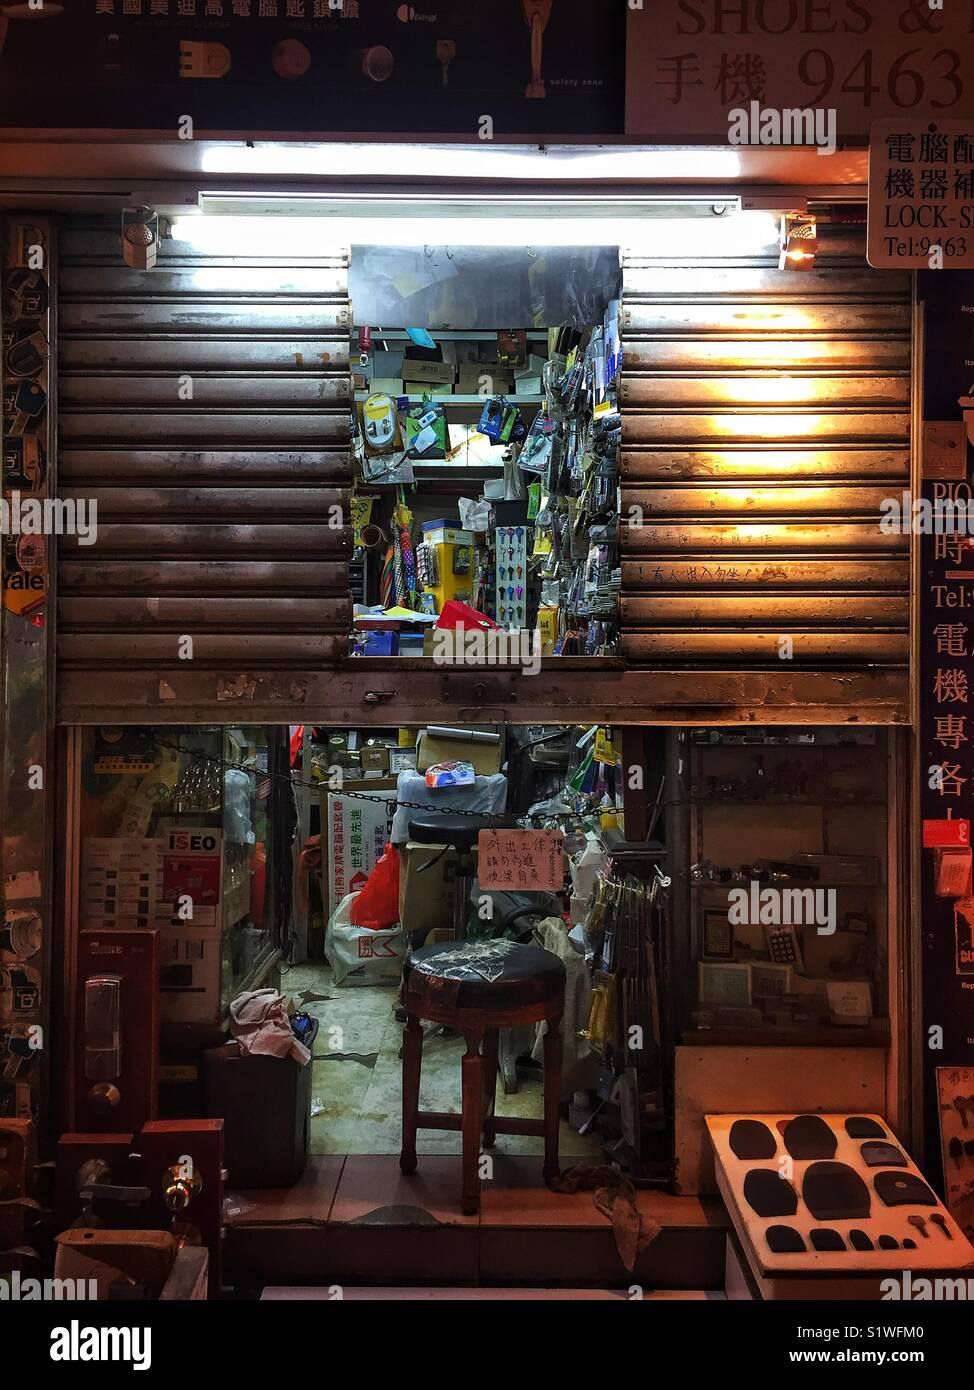 Locksmith and shoe repair shop, with sign indicating proprietor has gone for dinner, Causeway Bay, Hong Kong - Stock Image